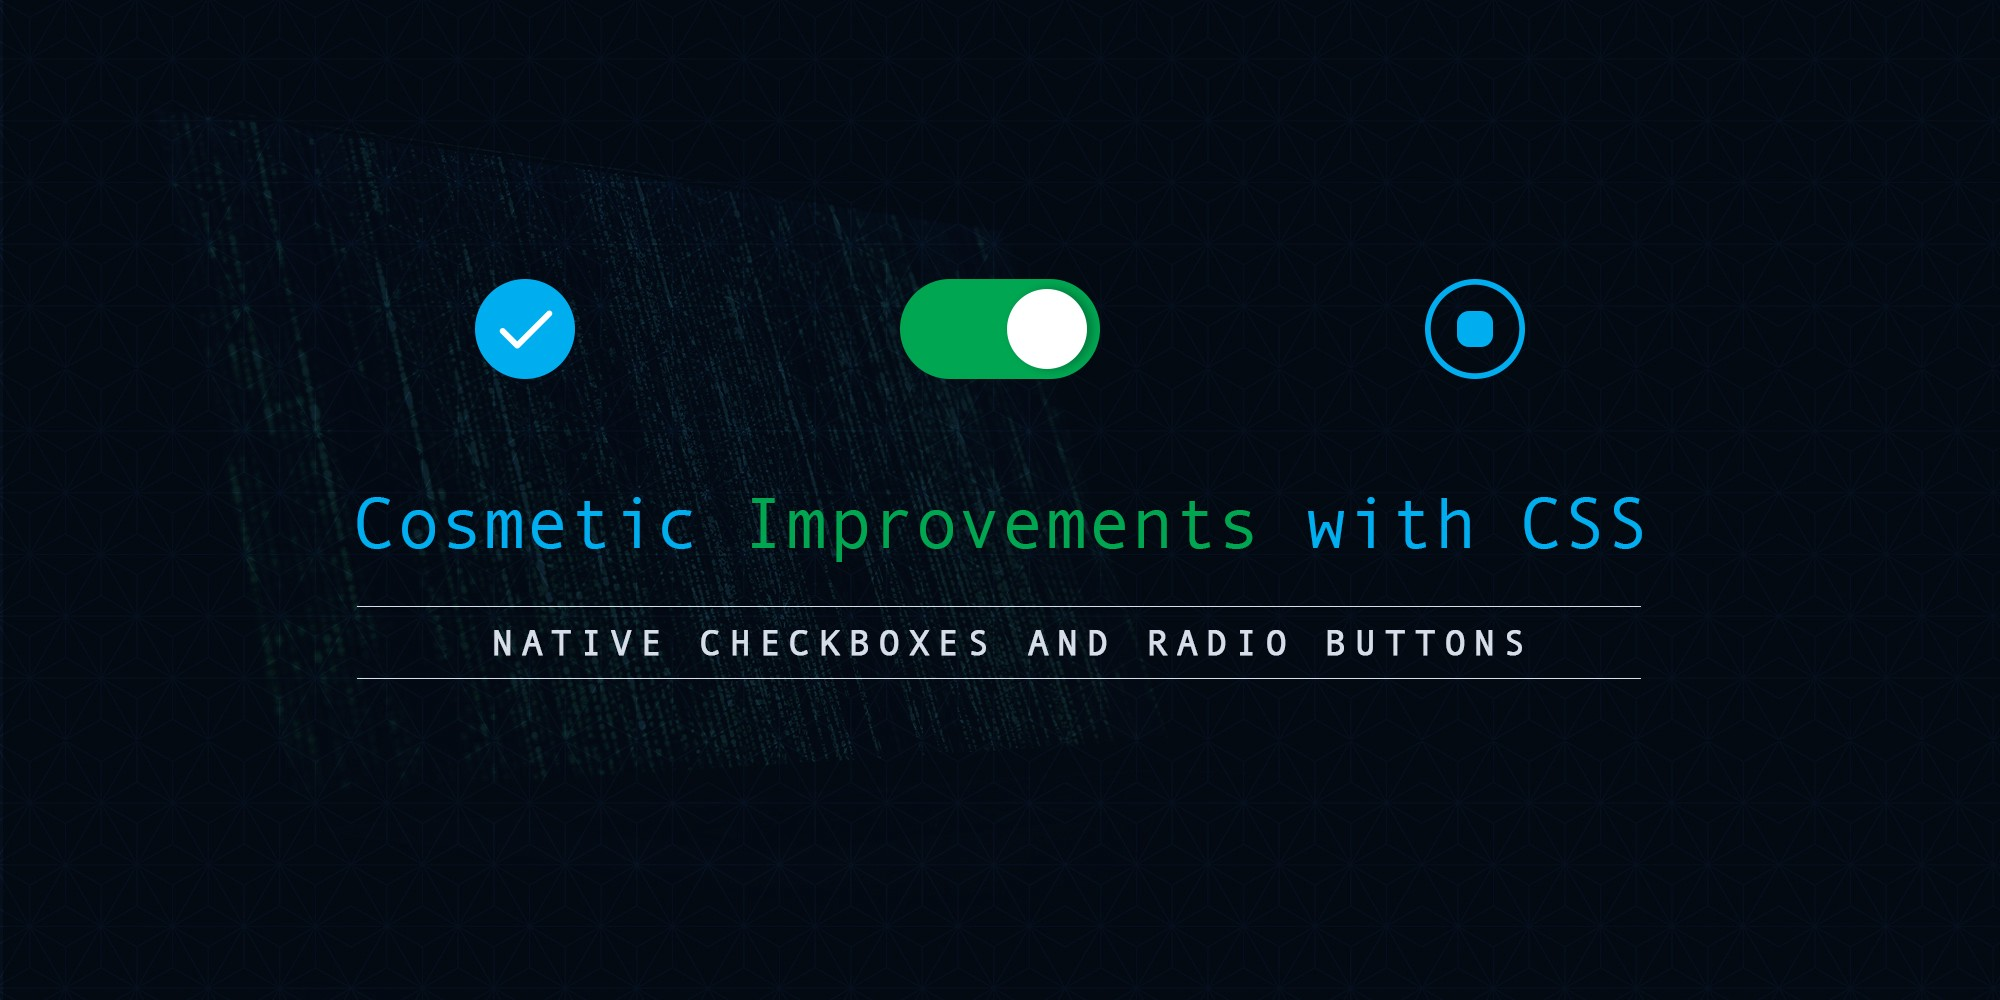 Hacking Custom Checkboxes And Radios - By Glad Chinda